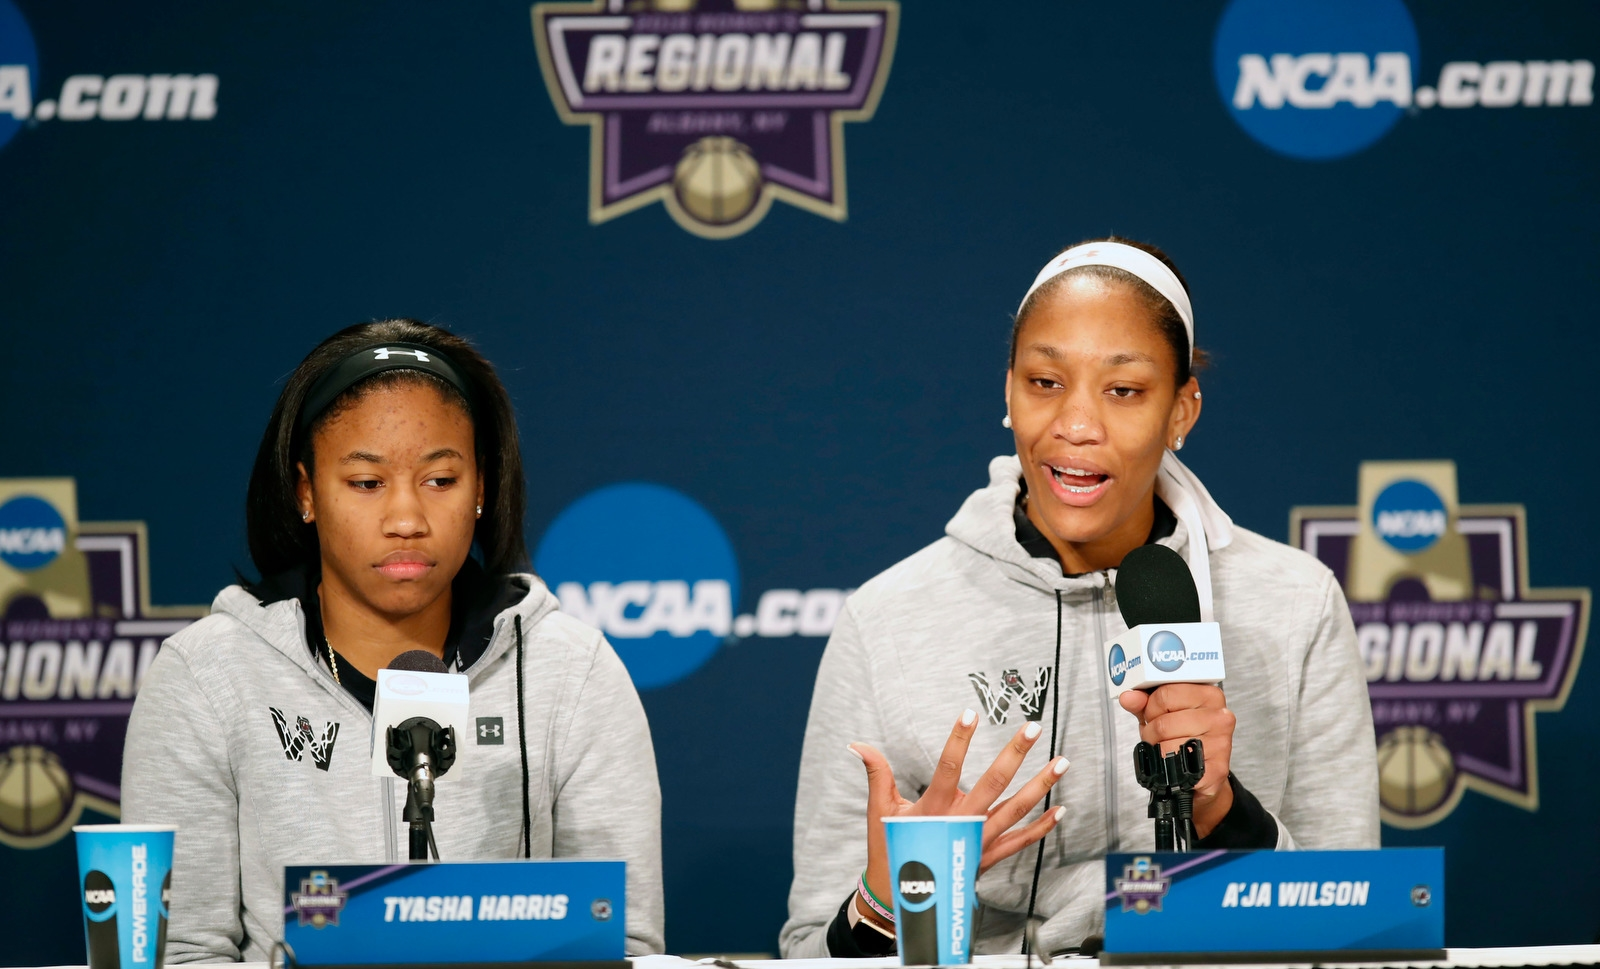 South Carolina forward Tyasha Harris and A'ja Wilson during a press conference before a regional semifinal game against the University at Buffalo in the NCAA women's college basketball tournament at the Times Union Center on Friday March 23, 2018.